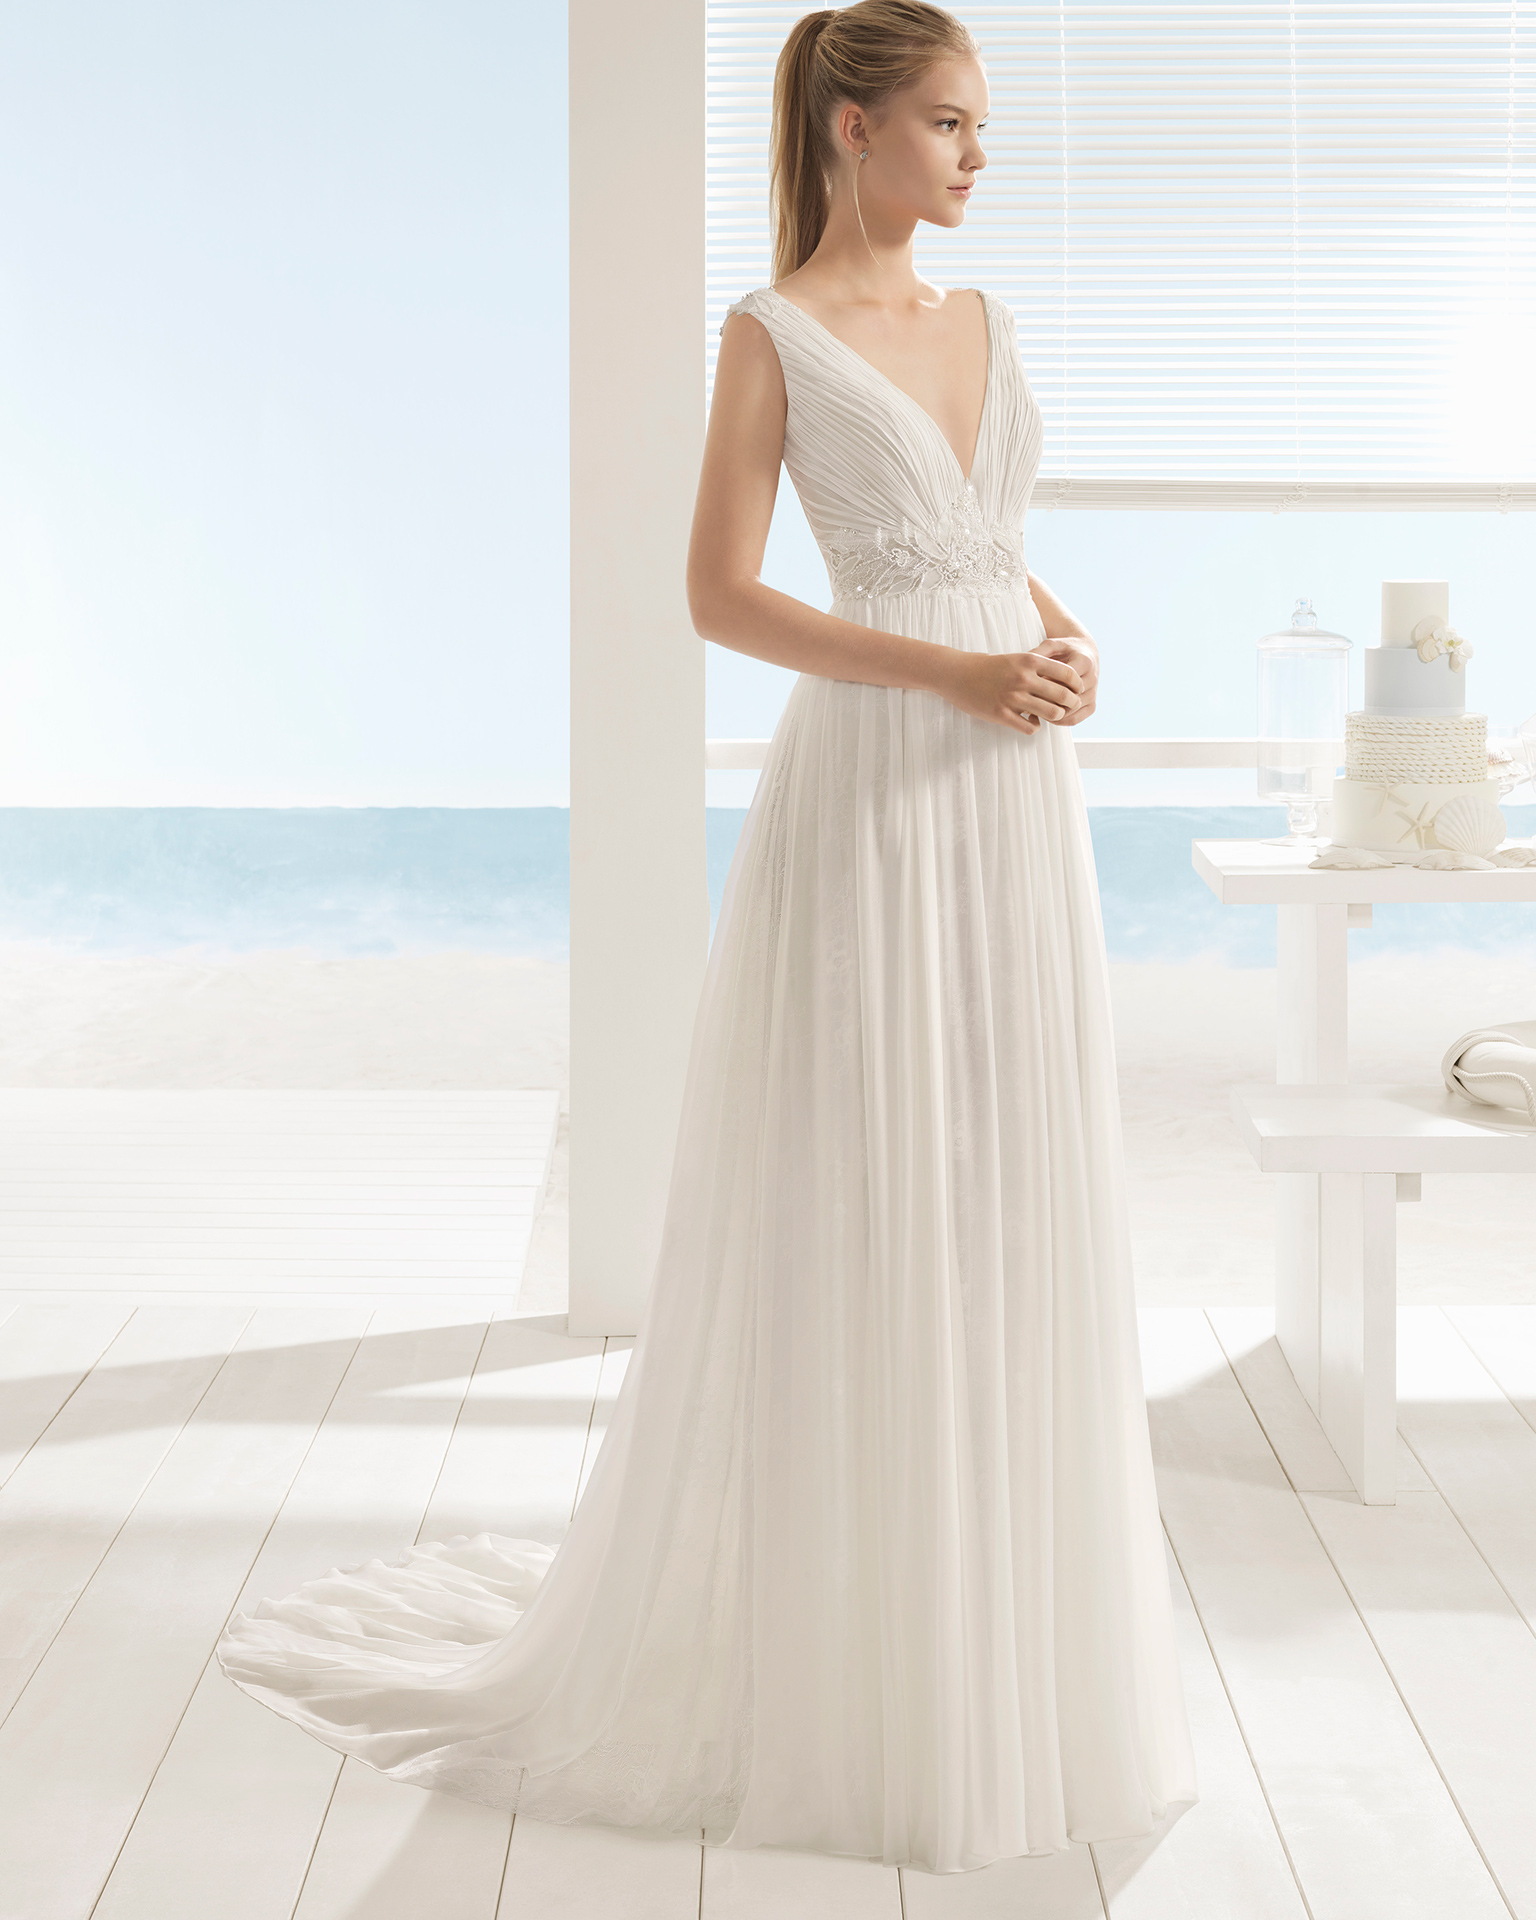 Boho-style silk chiffon wedding dress with V-neckline and low back with beadwork detail.